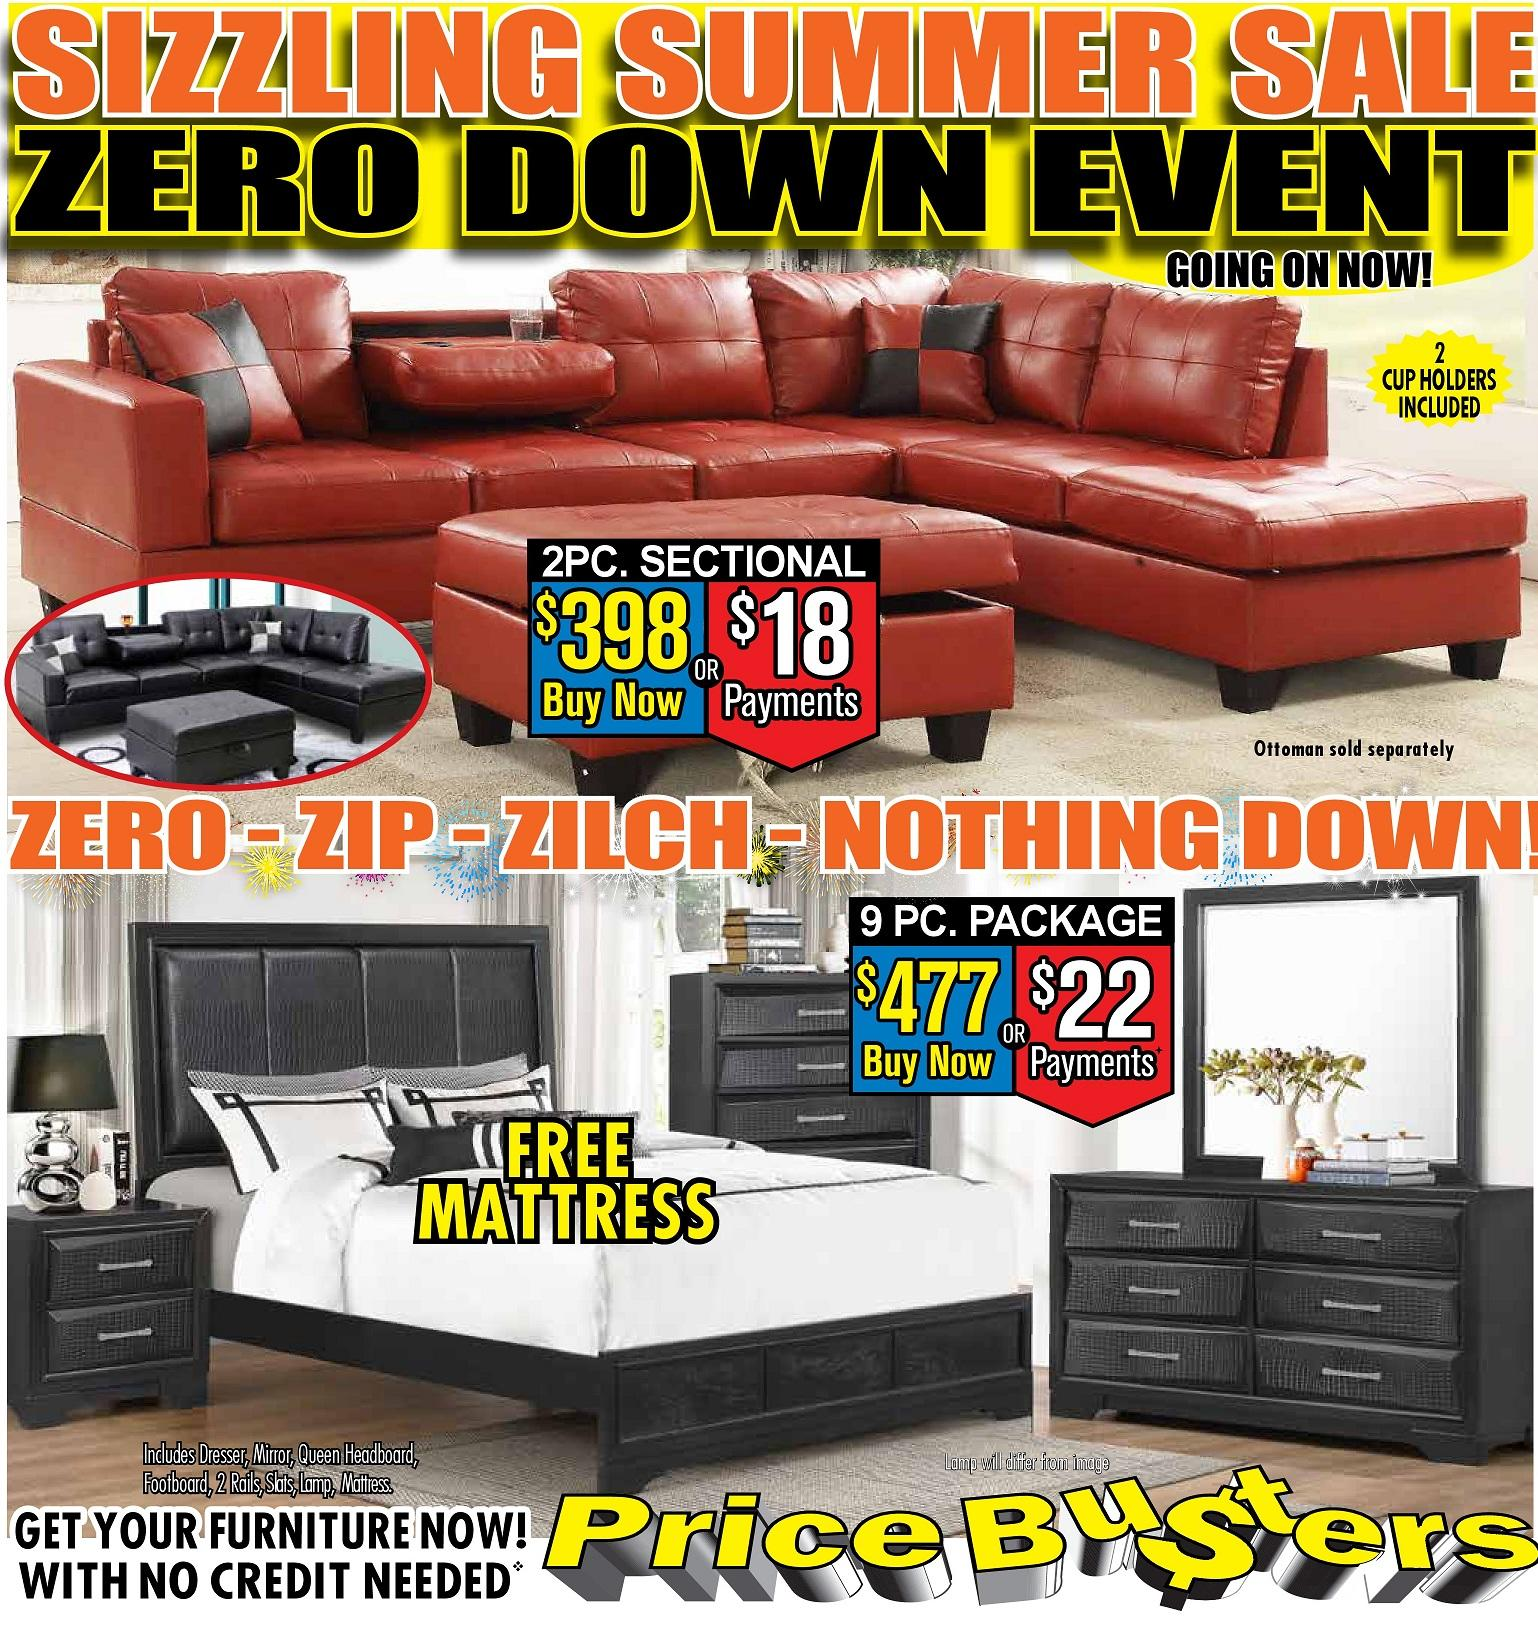 Price Busters Discount Furniture Coupons Near Me In Hyattsville 8coupons